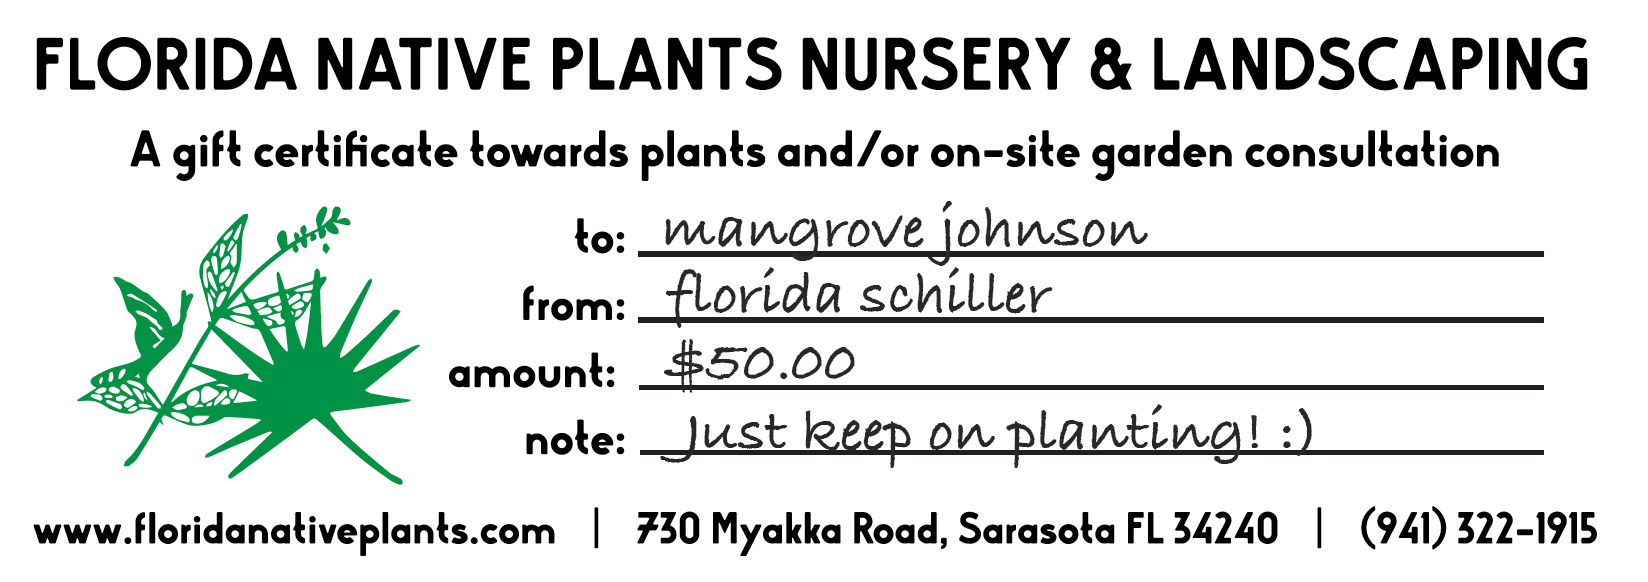 Florida Native Plants Gift Certificate